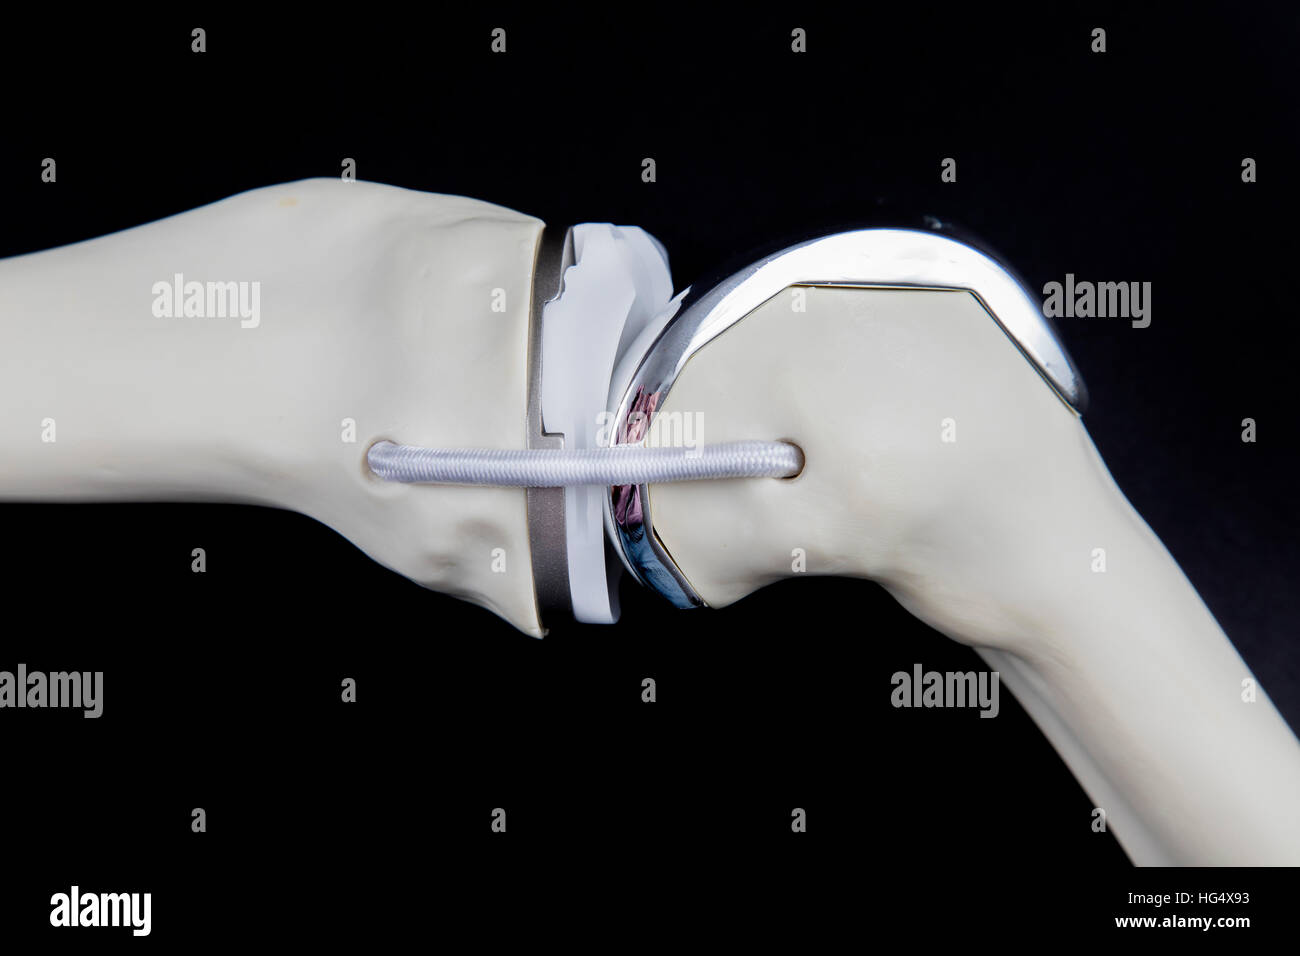 Knee prosthesis, knee endoprosthesis or knee joint prosthesis, on a bone model, artificial knee joint, - Stock Image